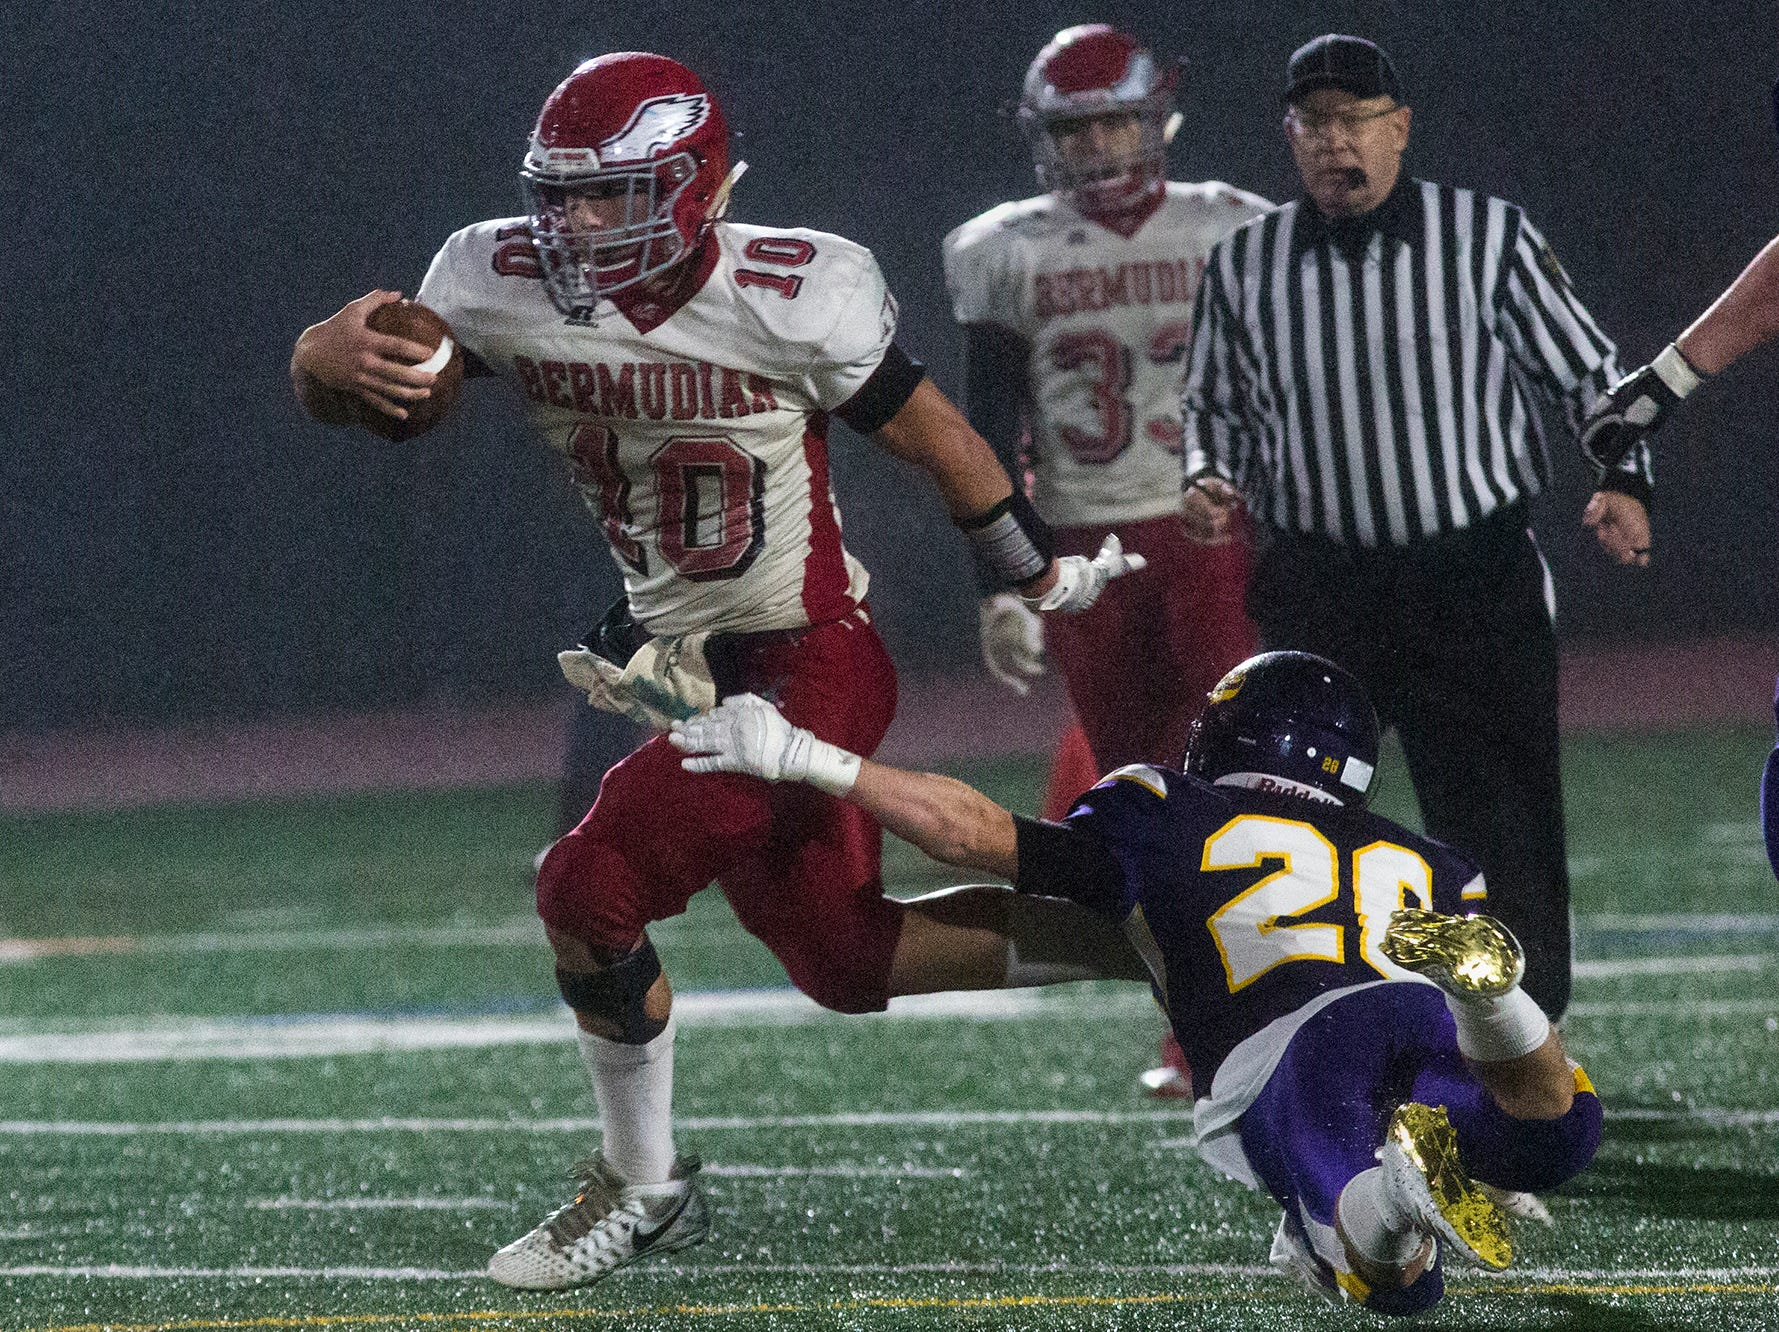 Bermudian Springs quarterback Chase Dull, left, breaks a long run for the Eagles' third touchdown. Bermudian Springs defeats Lancaster Catholic 20-10 in a District 3 Class 3A semifinal football game at Lancaster Catholic's Crusader Stadium, Friday, November 9, 2018.